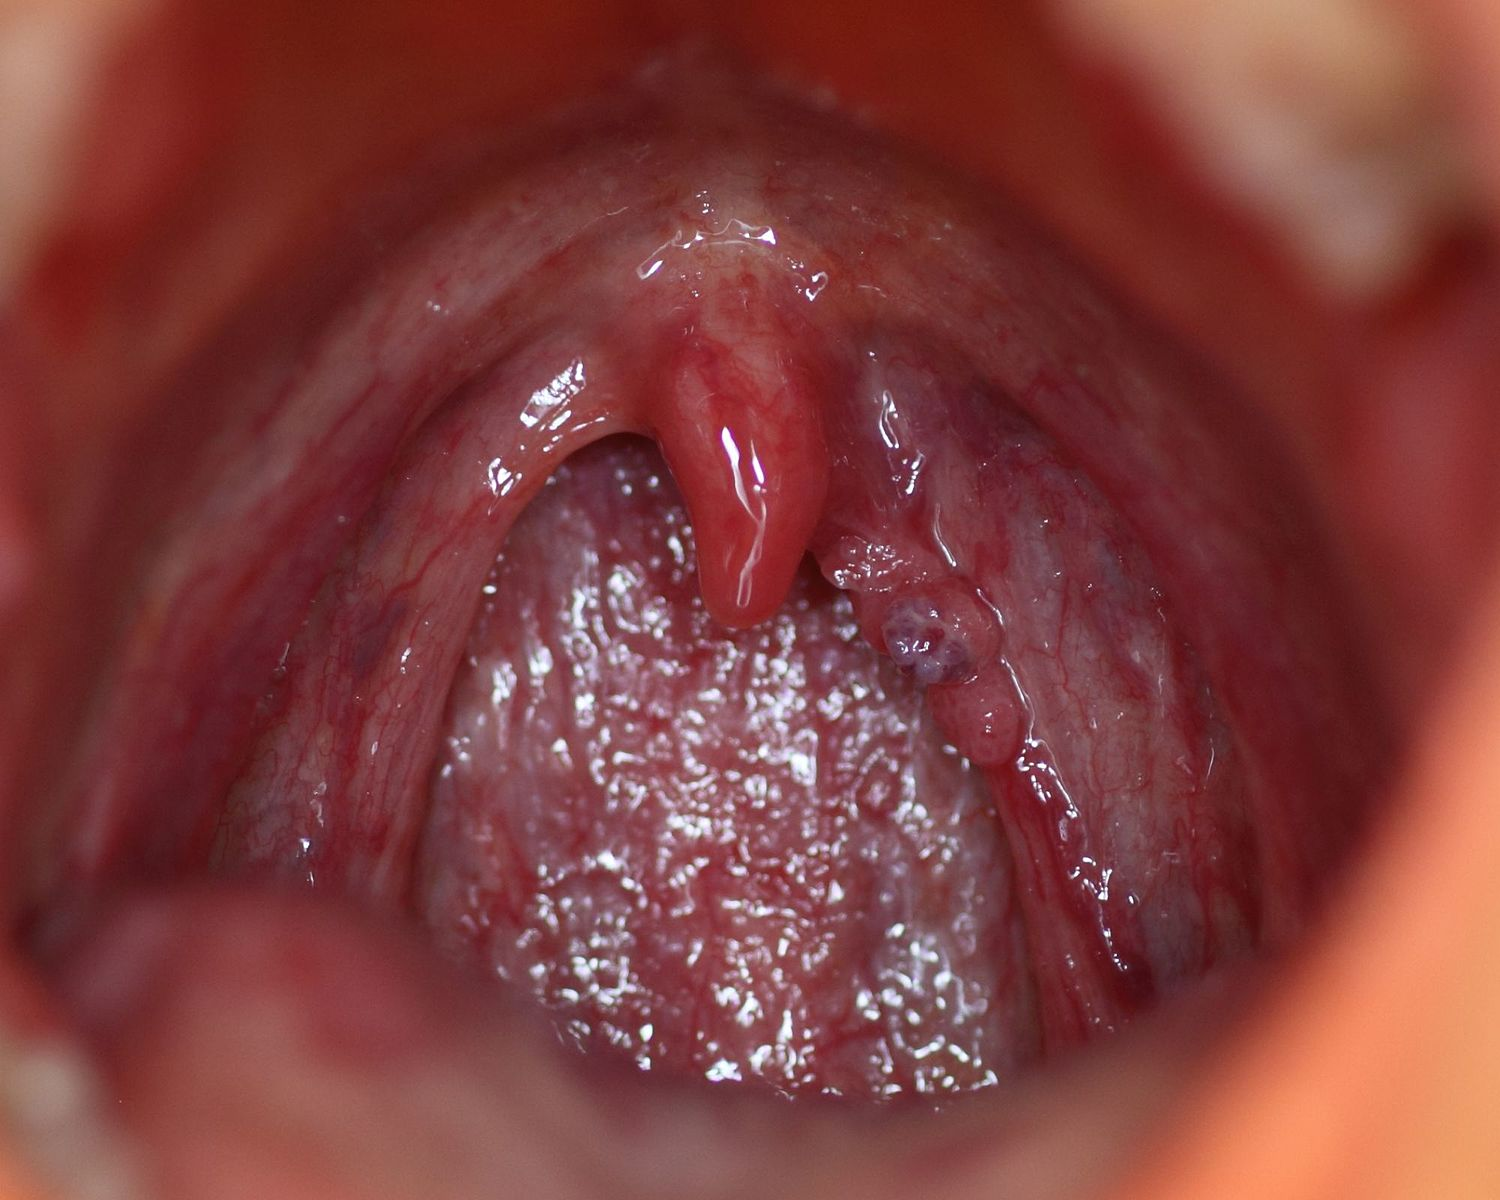 hpv virus symptoms mouth